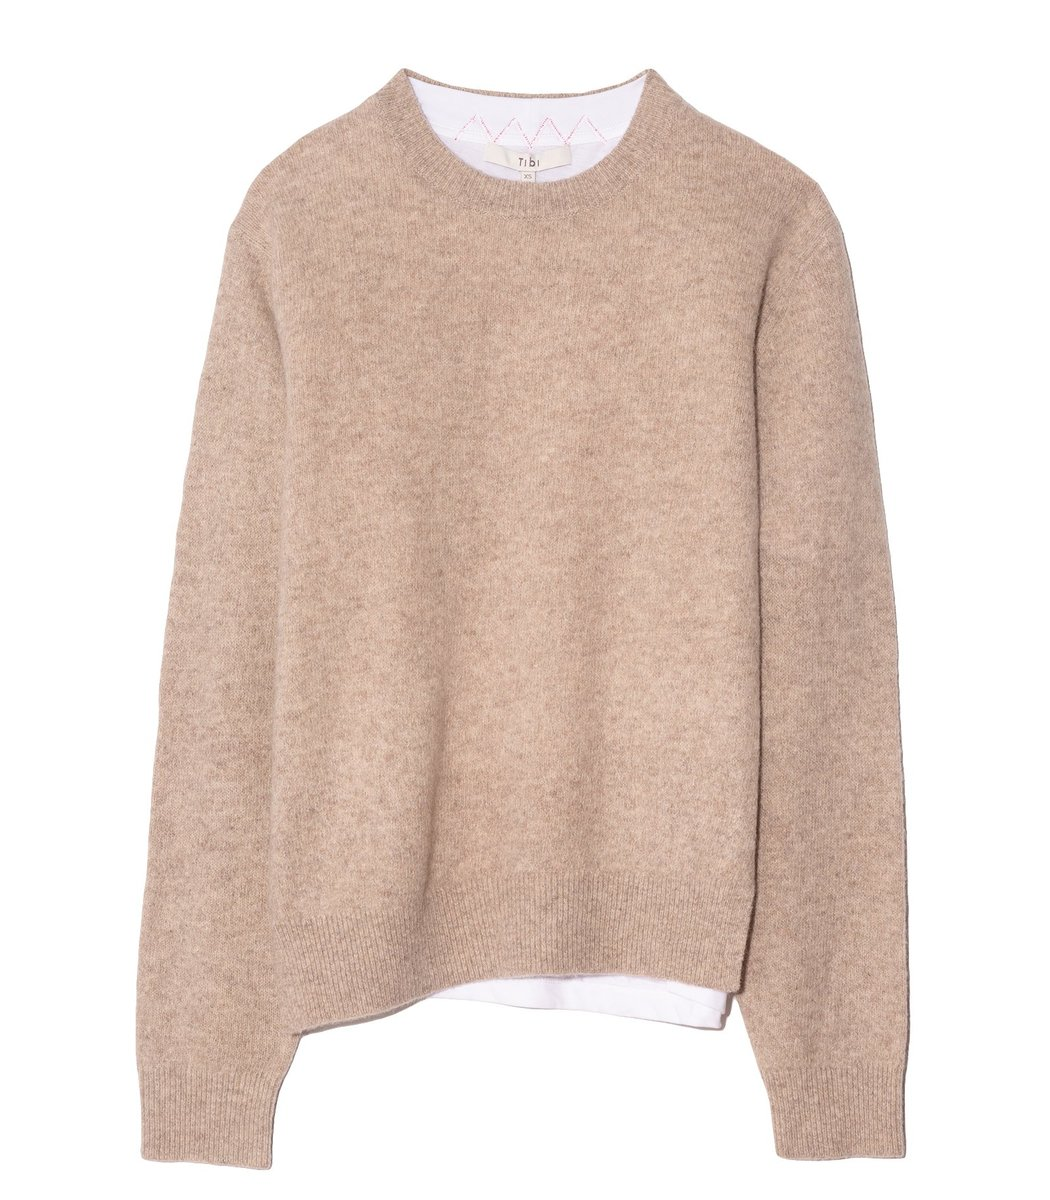 Tibi Lana Layered T-Shirt Sweater in Oatmeal Multi